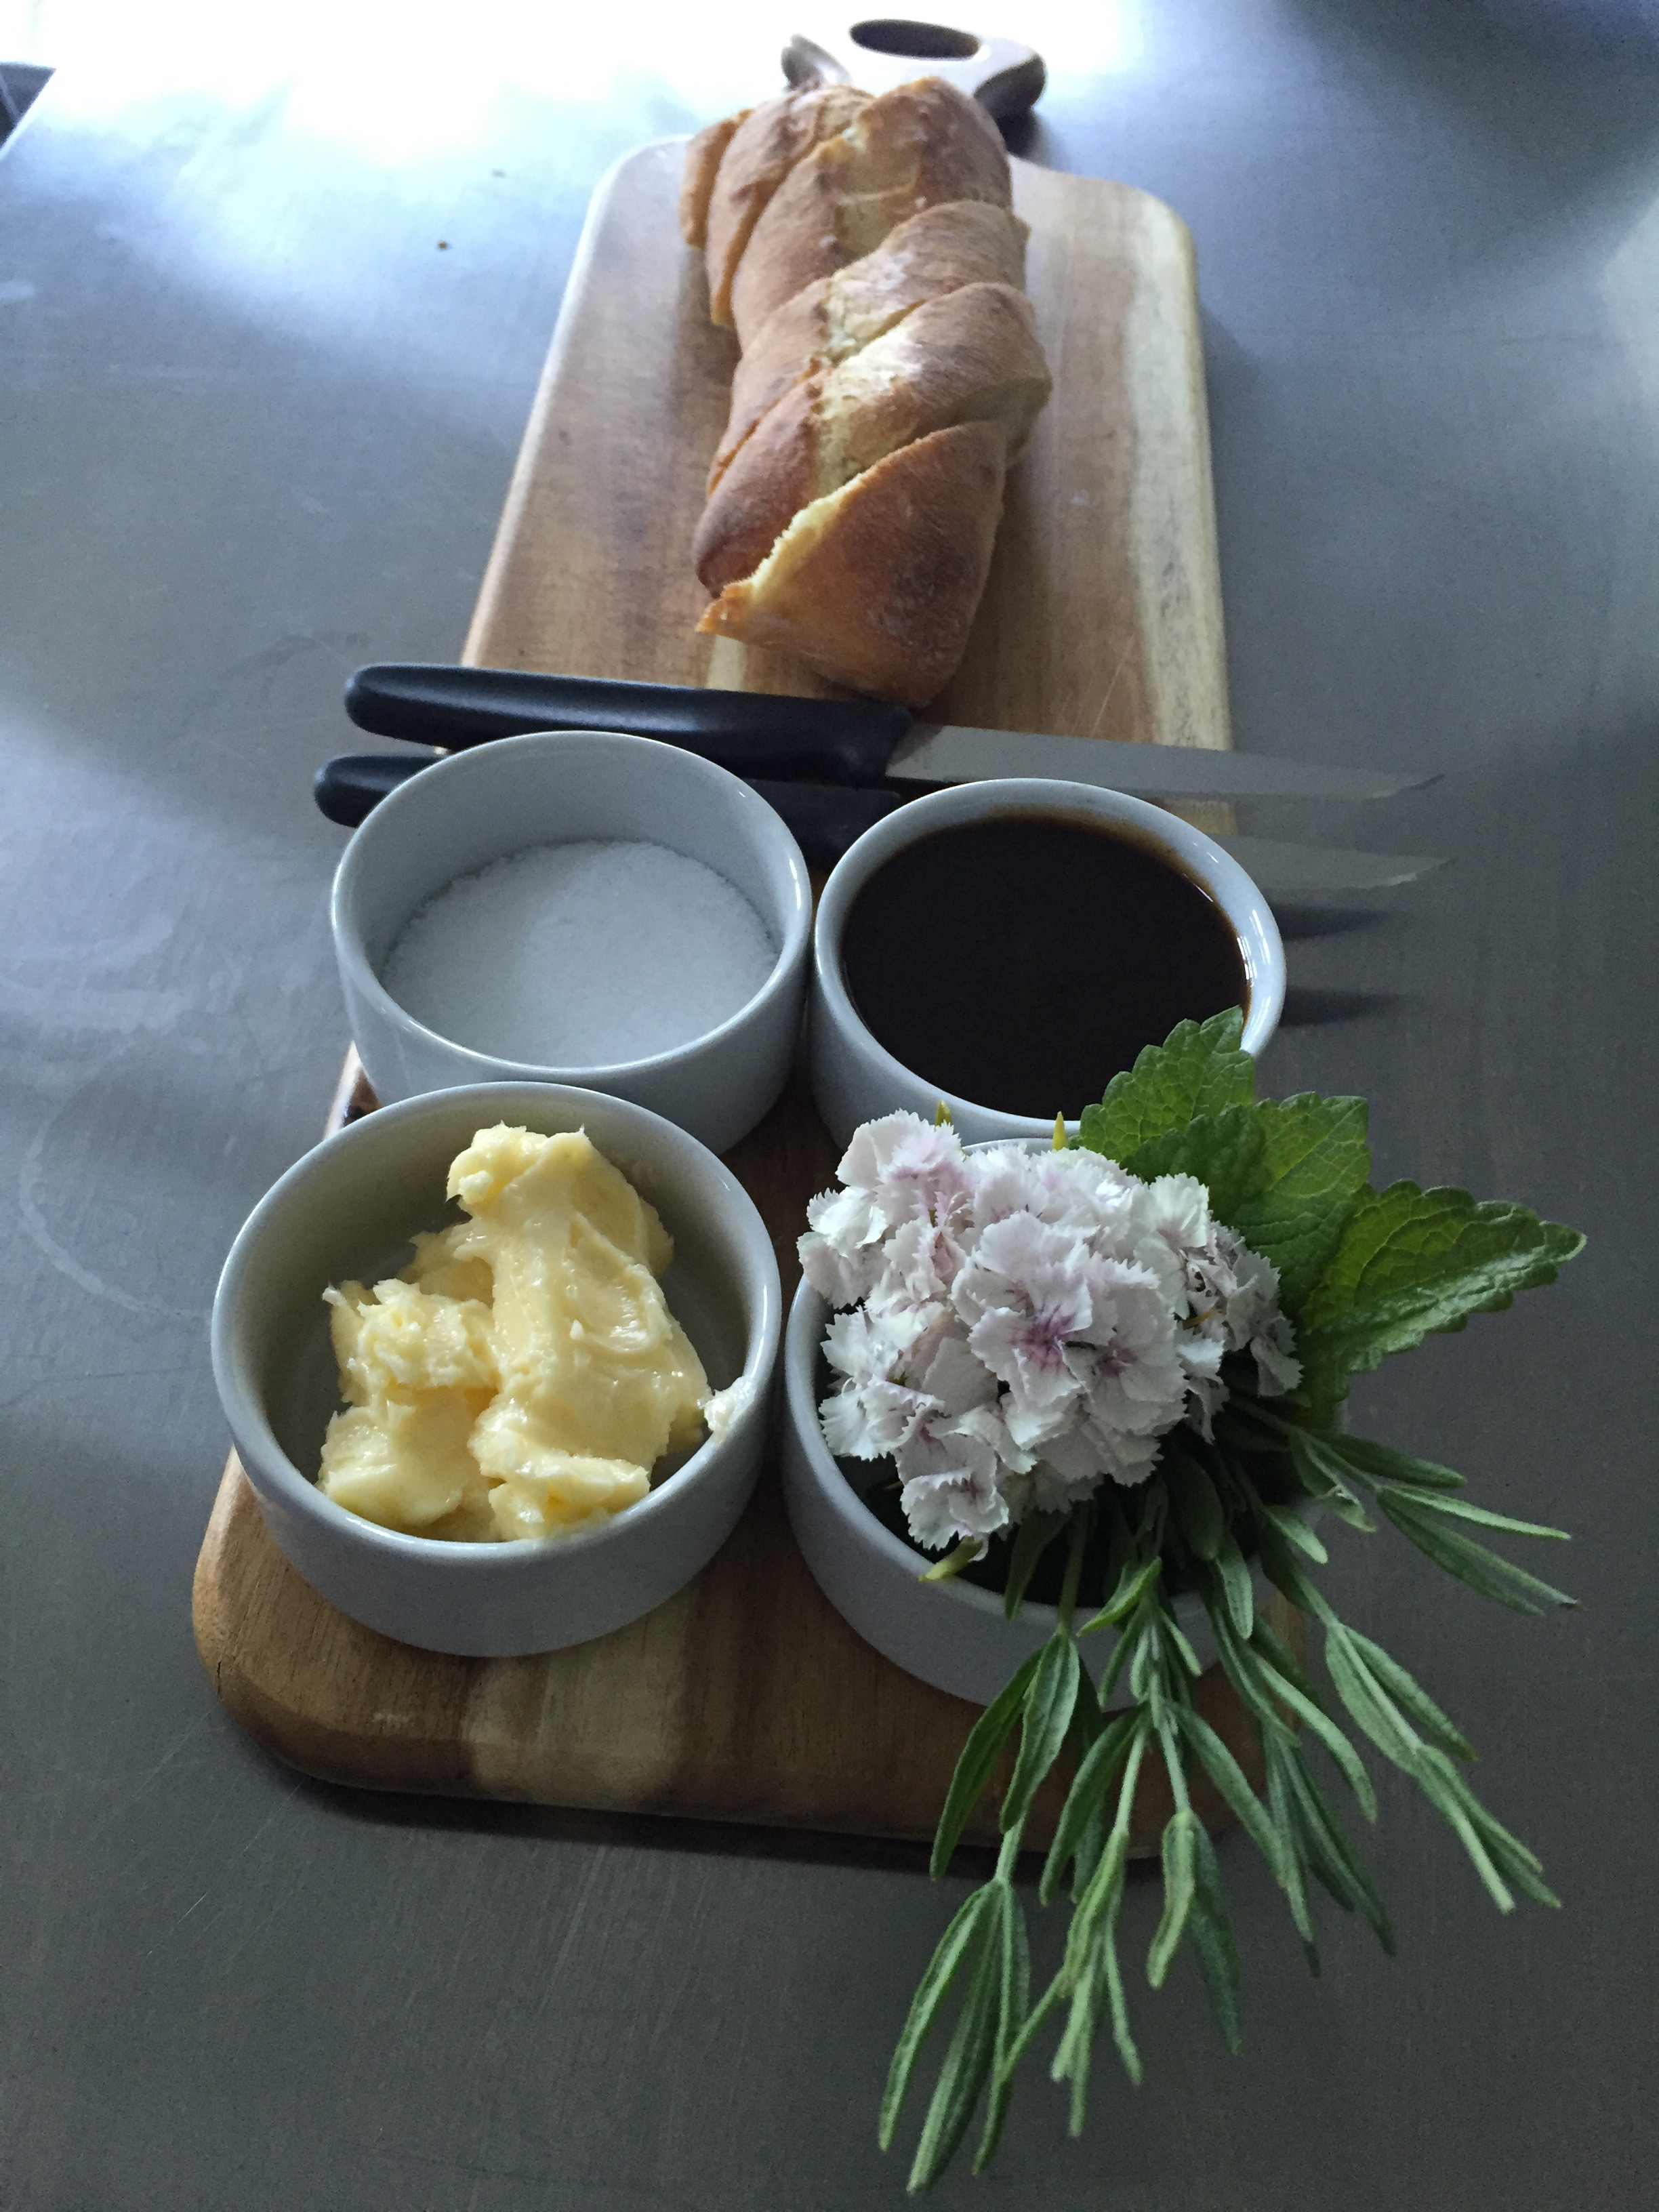 fresh baked baguette, butter & balsamic